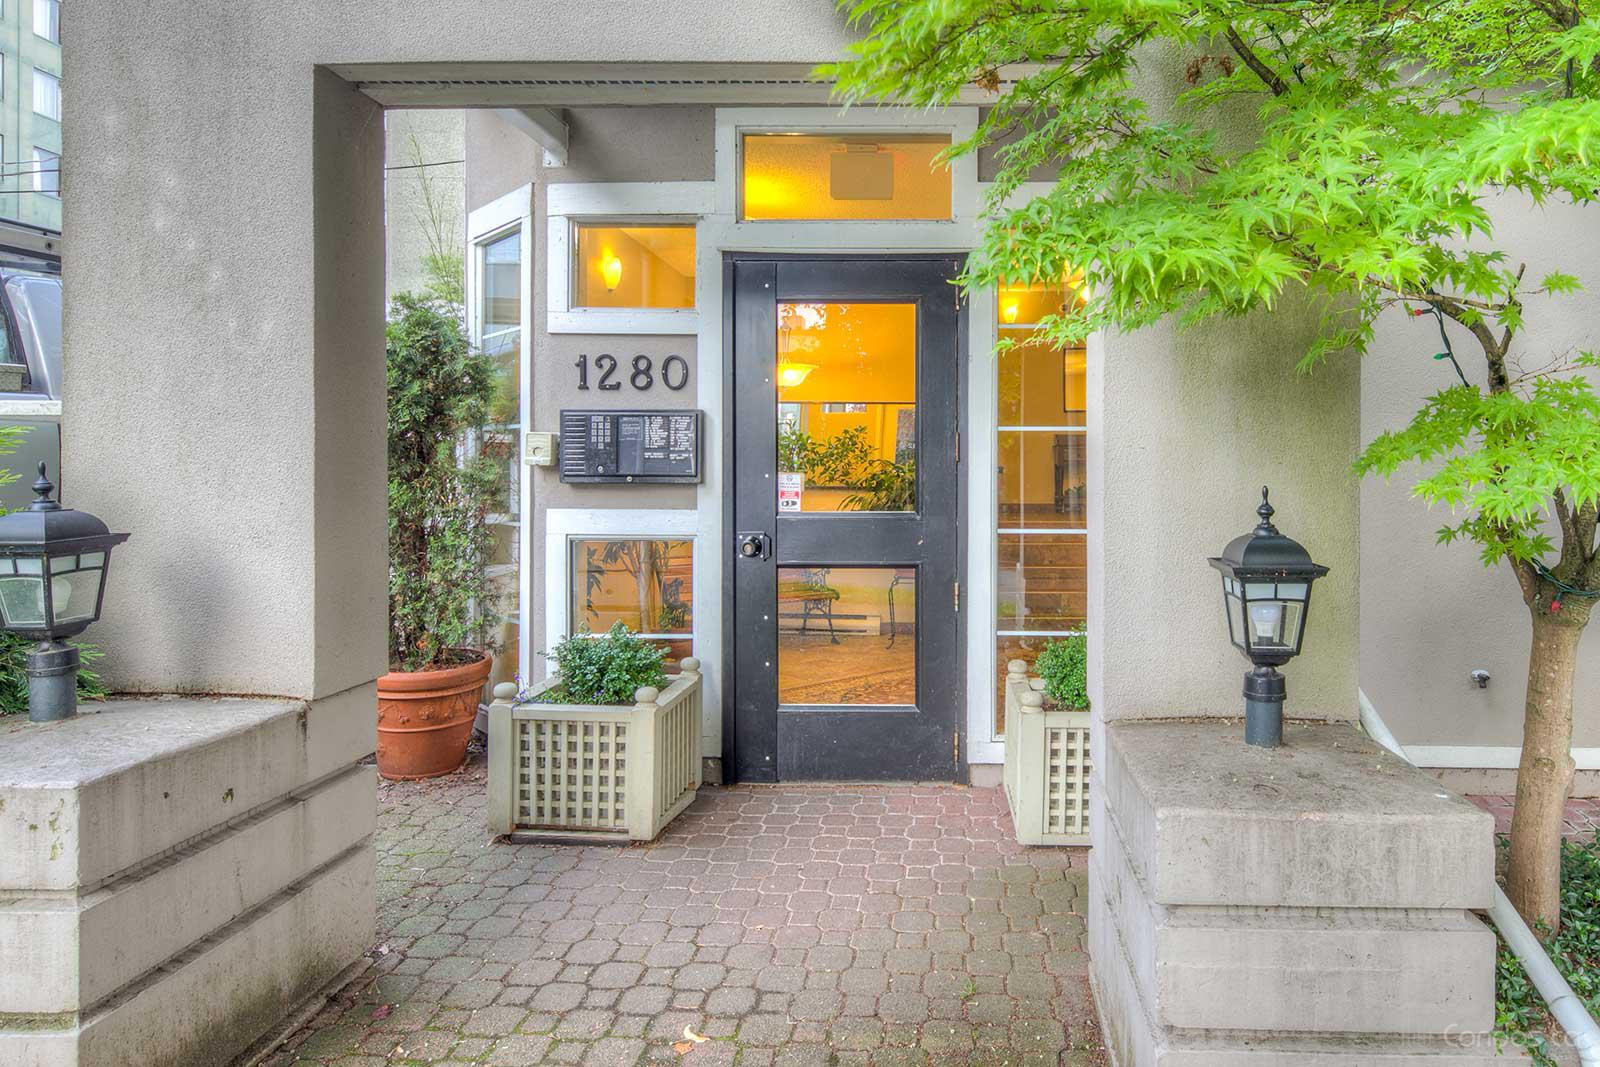 Linden House at 1280 Nicola St, Vancouver 1